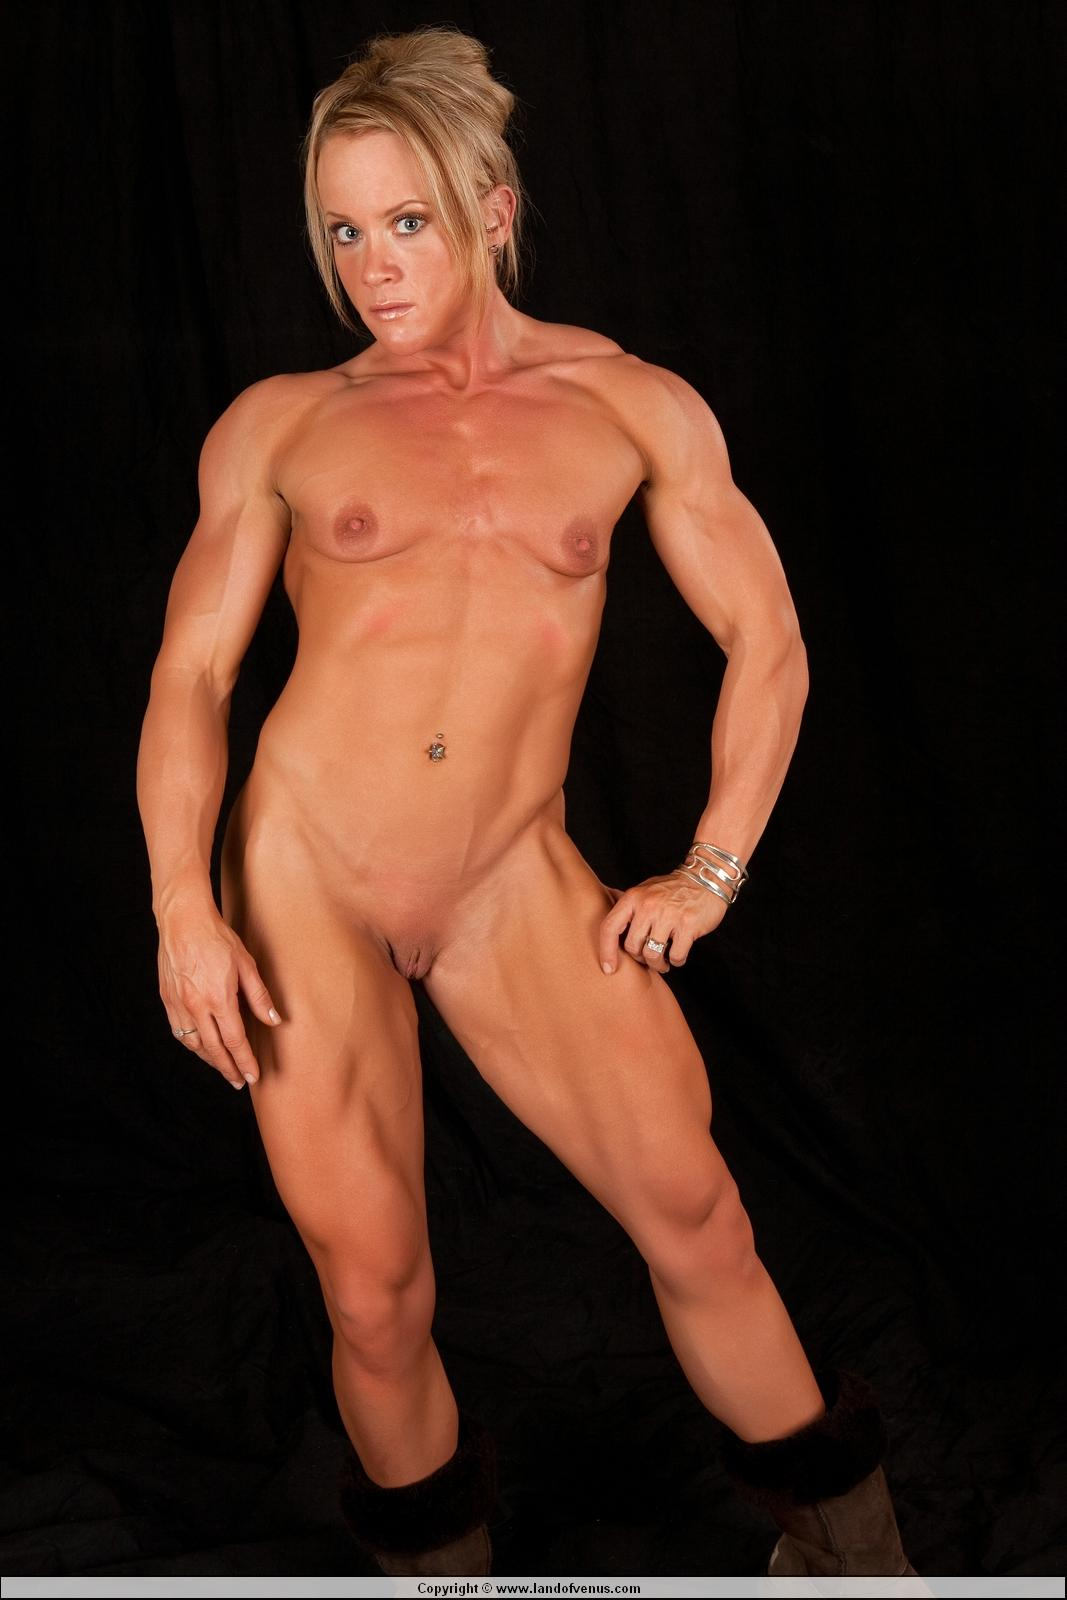 Sexy muscular female nude photos